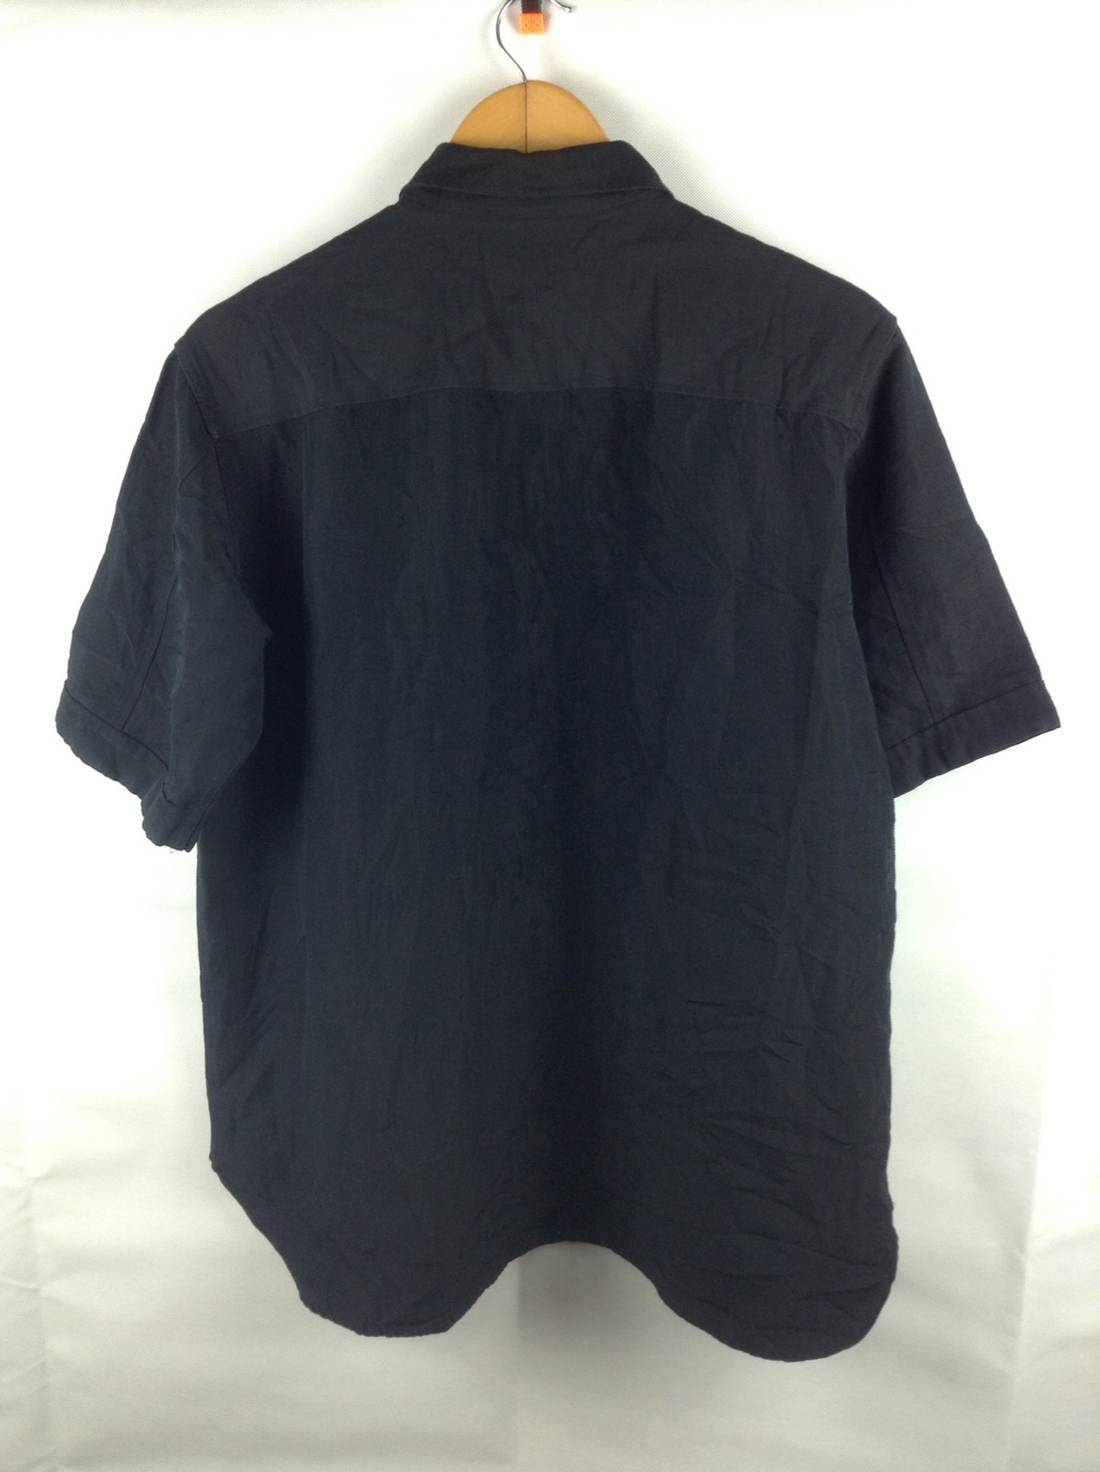 A.A.R.YOHJI YAMAMO TO Men shirt Size Medium. HNhS0